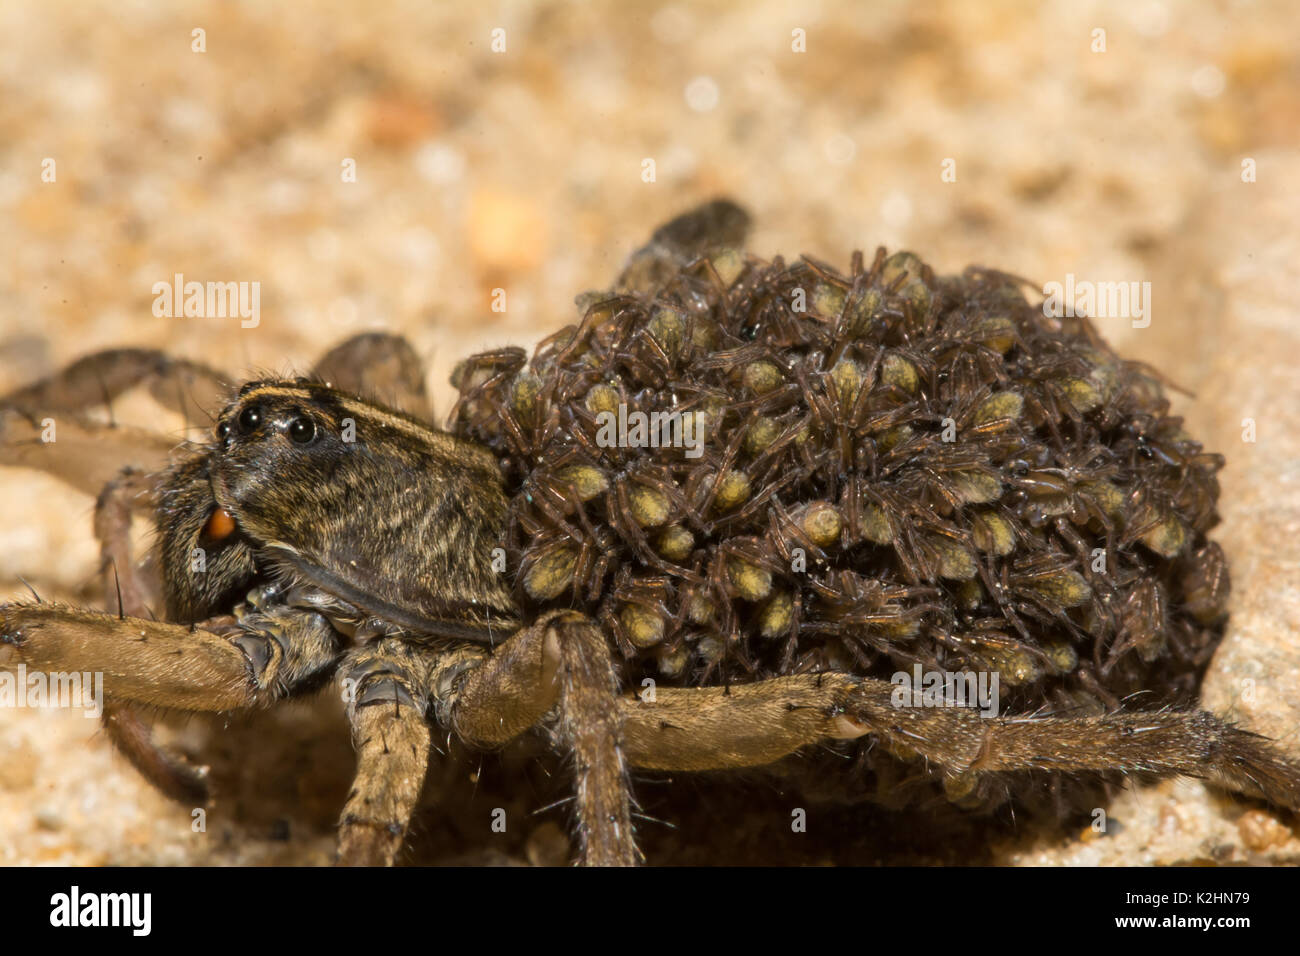 A close up of a female Wolf Spider with her young on her abdomen. - Stock Image